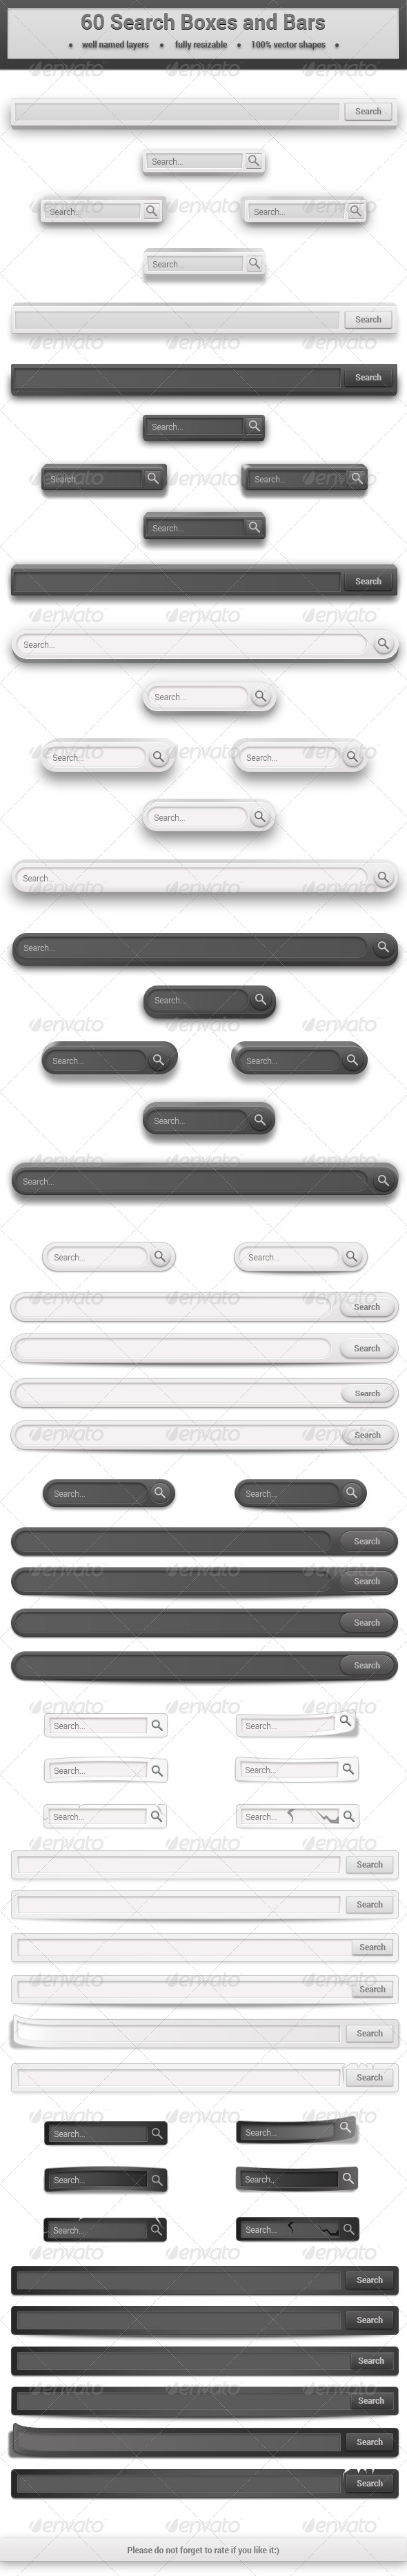 GraphicRiver 60 Search Boxes and Bars 6451769